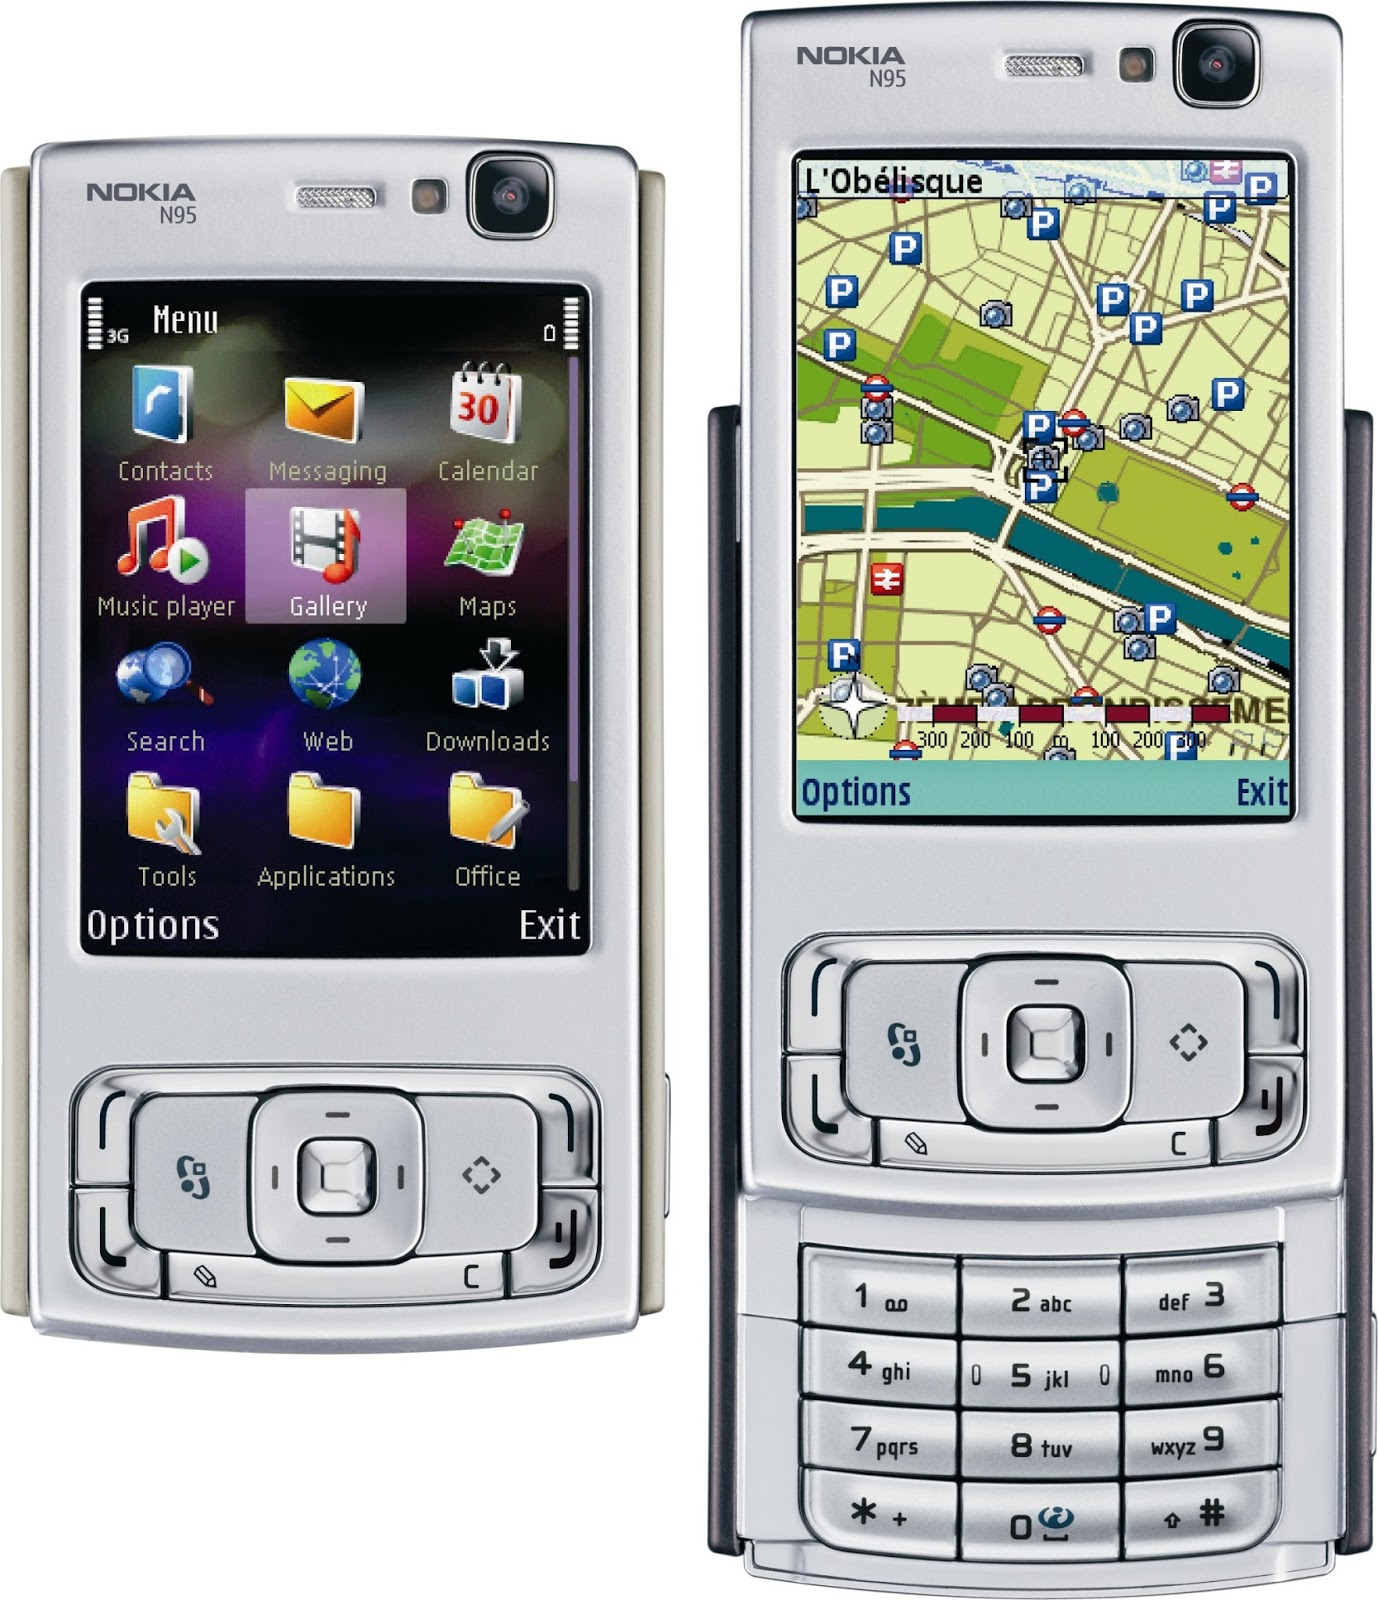 the history of nokia Nokia's 101 was the world's first commercially available gsm mobile phone paving the way for future candy-bar designs, the 101 had a monochrome display, an extendable antenna and a phonebook that could store 99 phone numbers.